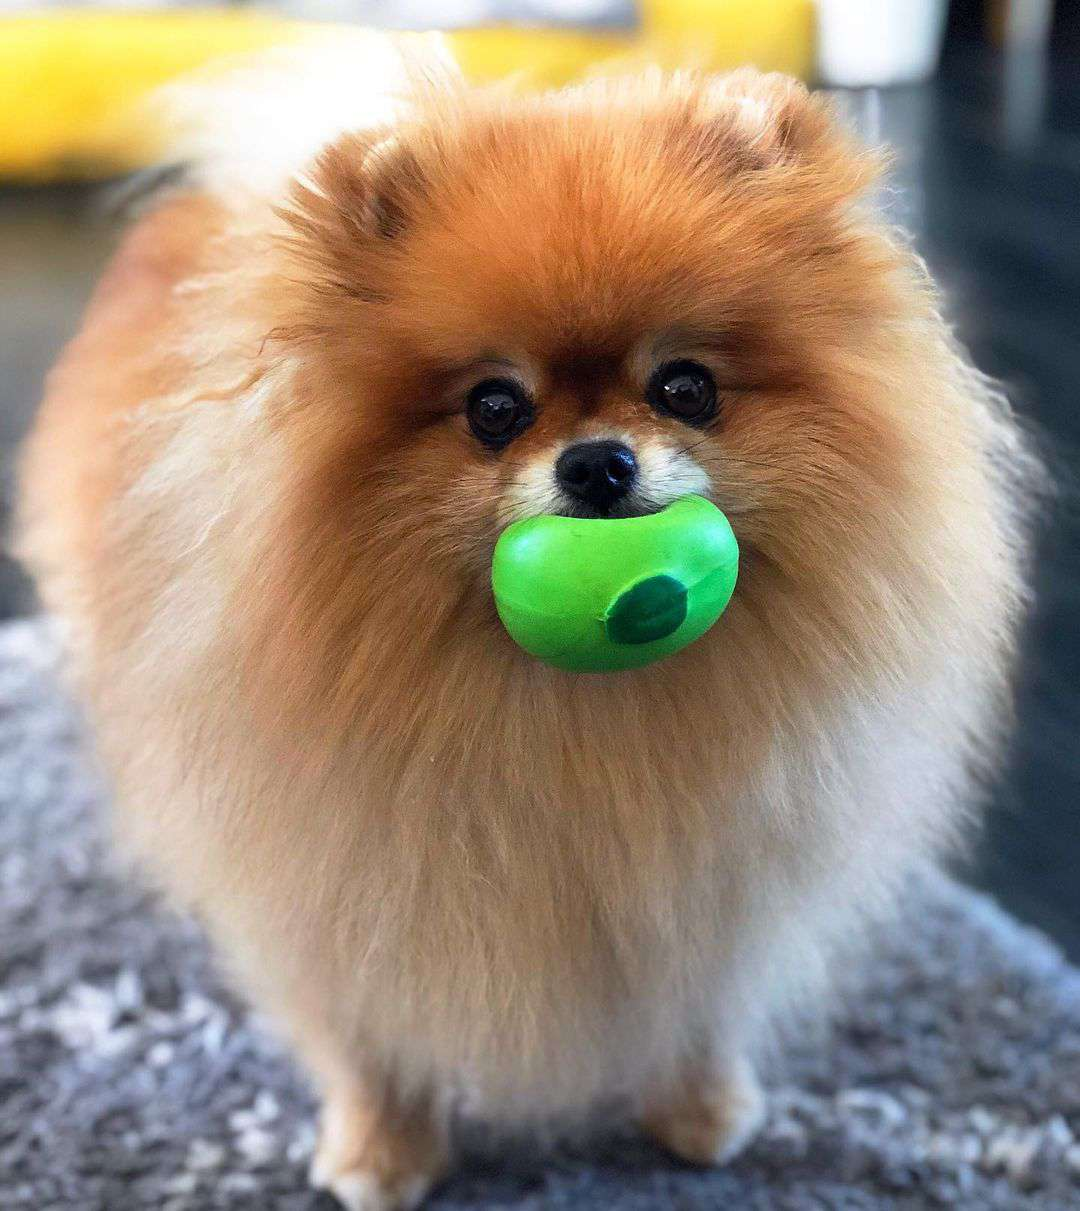 A fluffy tan pomeranian with a green ball in its mouth.